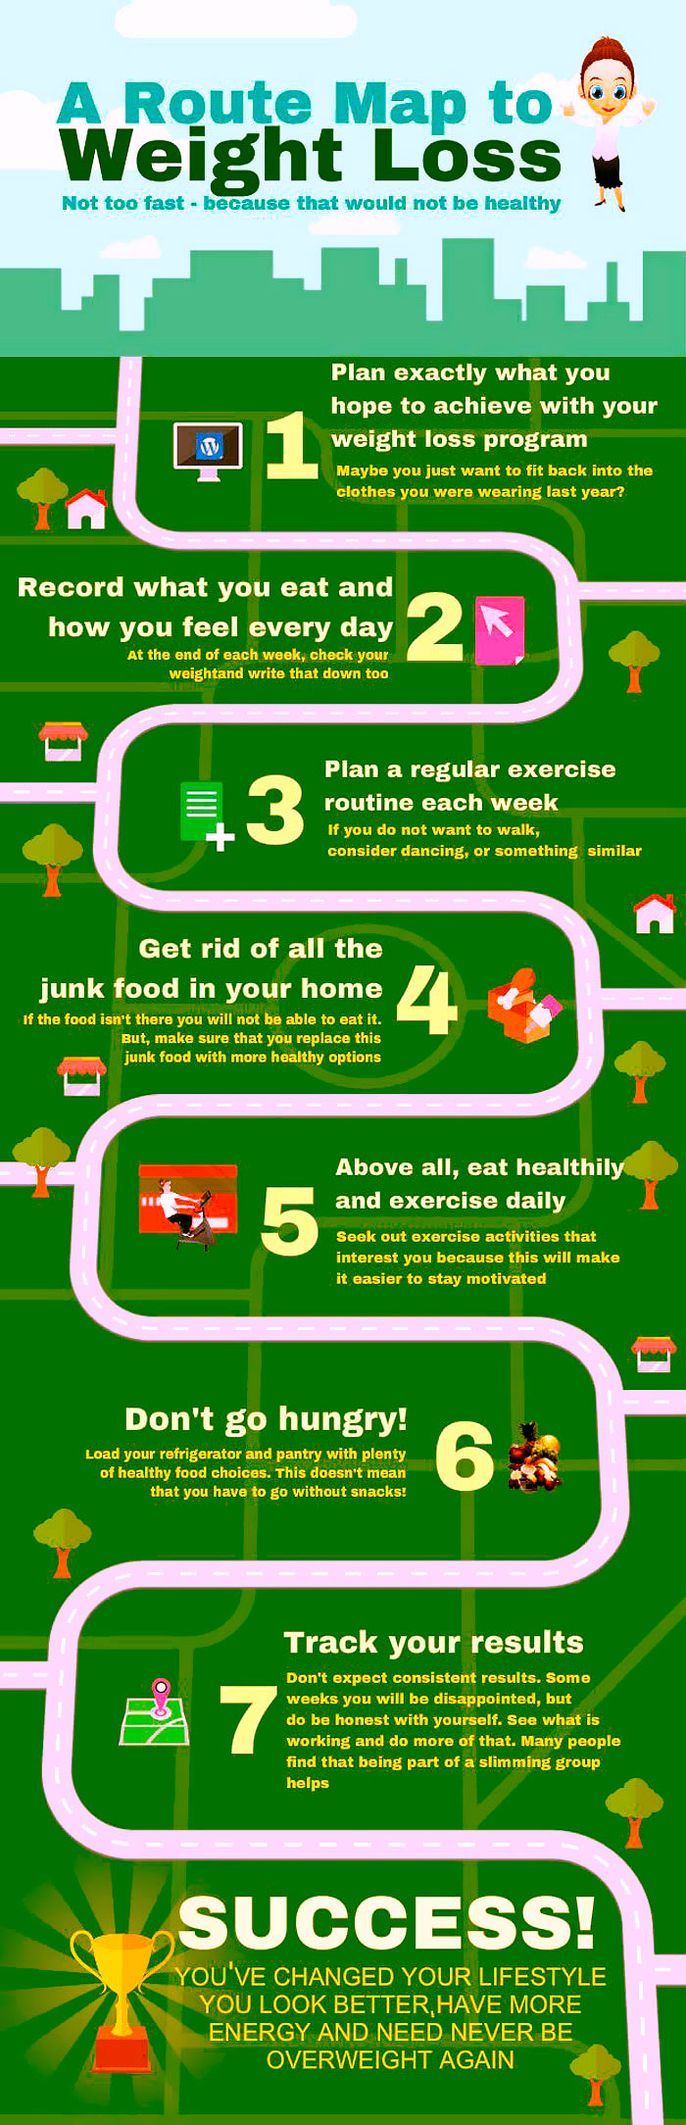 Easy route map to weight loss